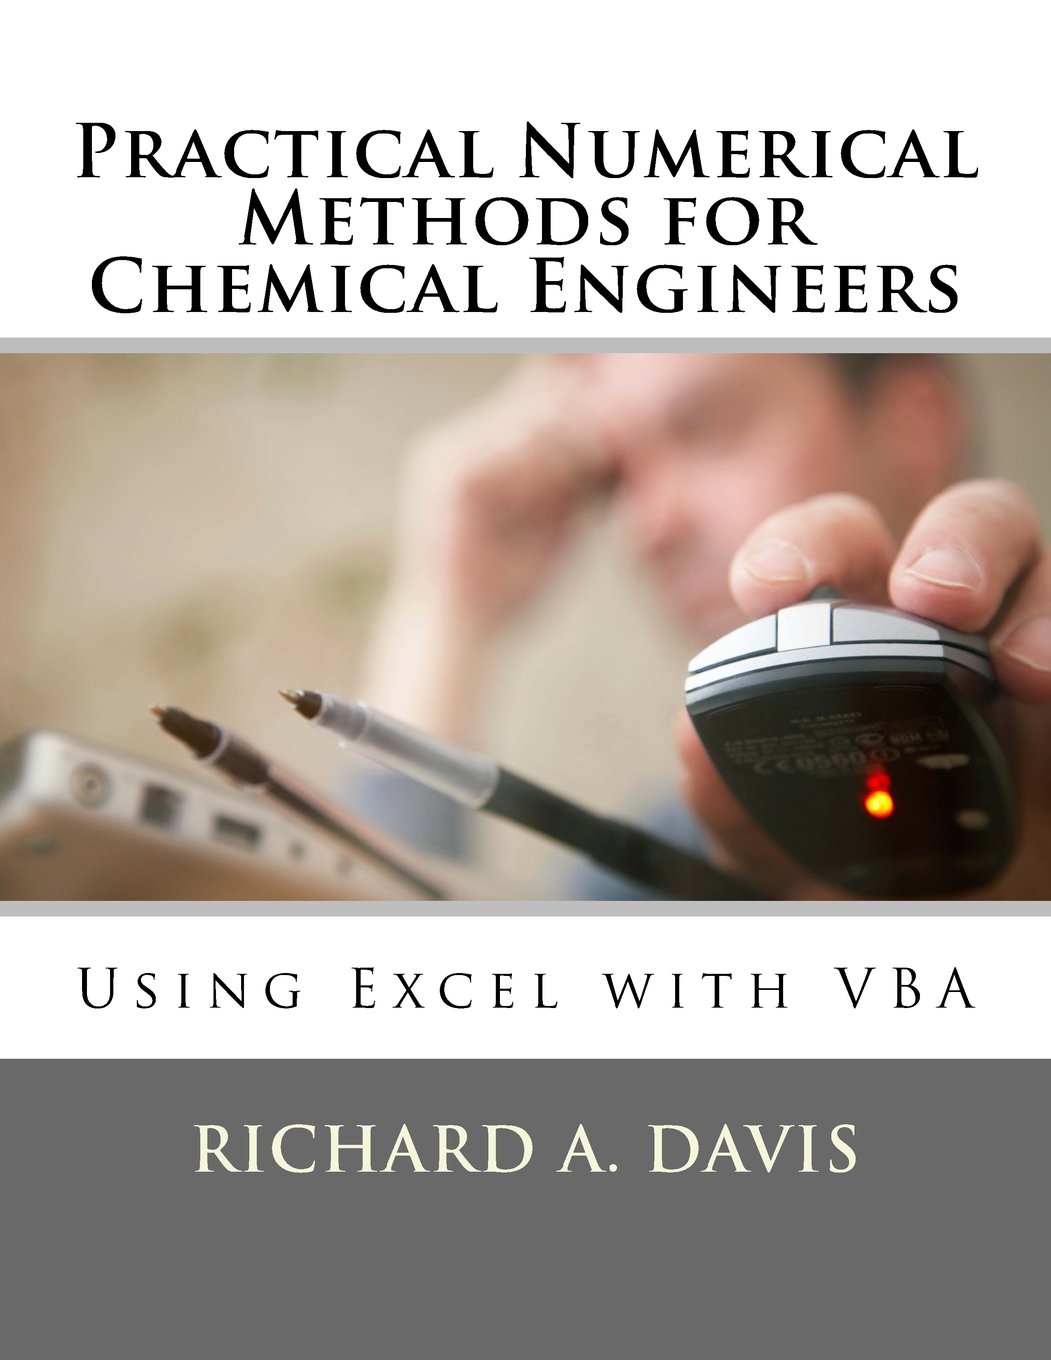 Download Practical Numerical Methods for Chemical Engineers: Using Excel with VBA ebook